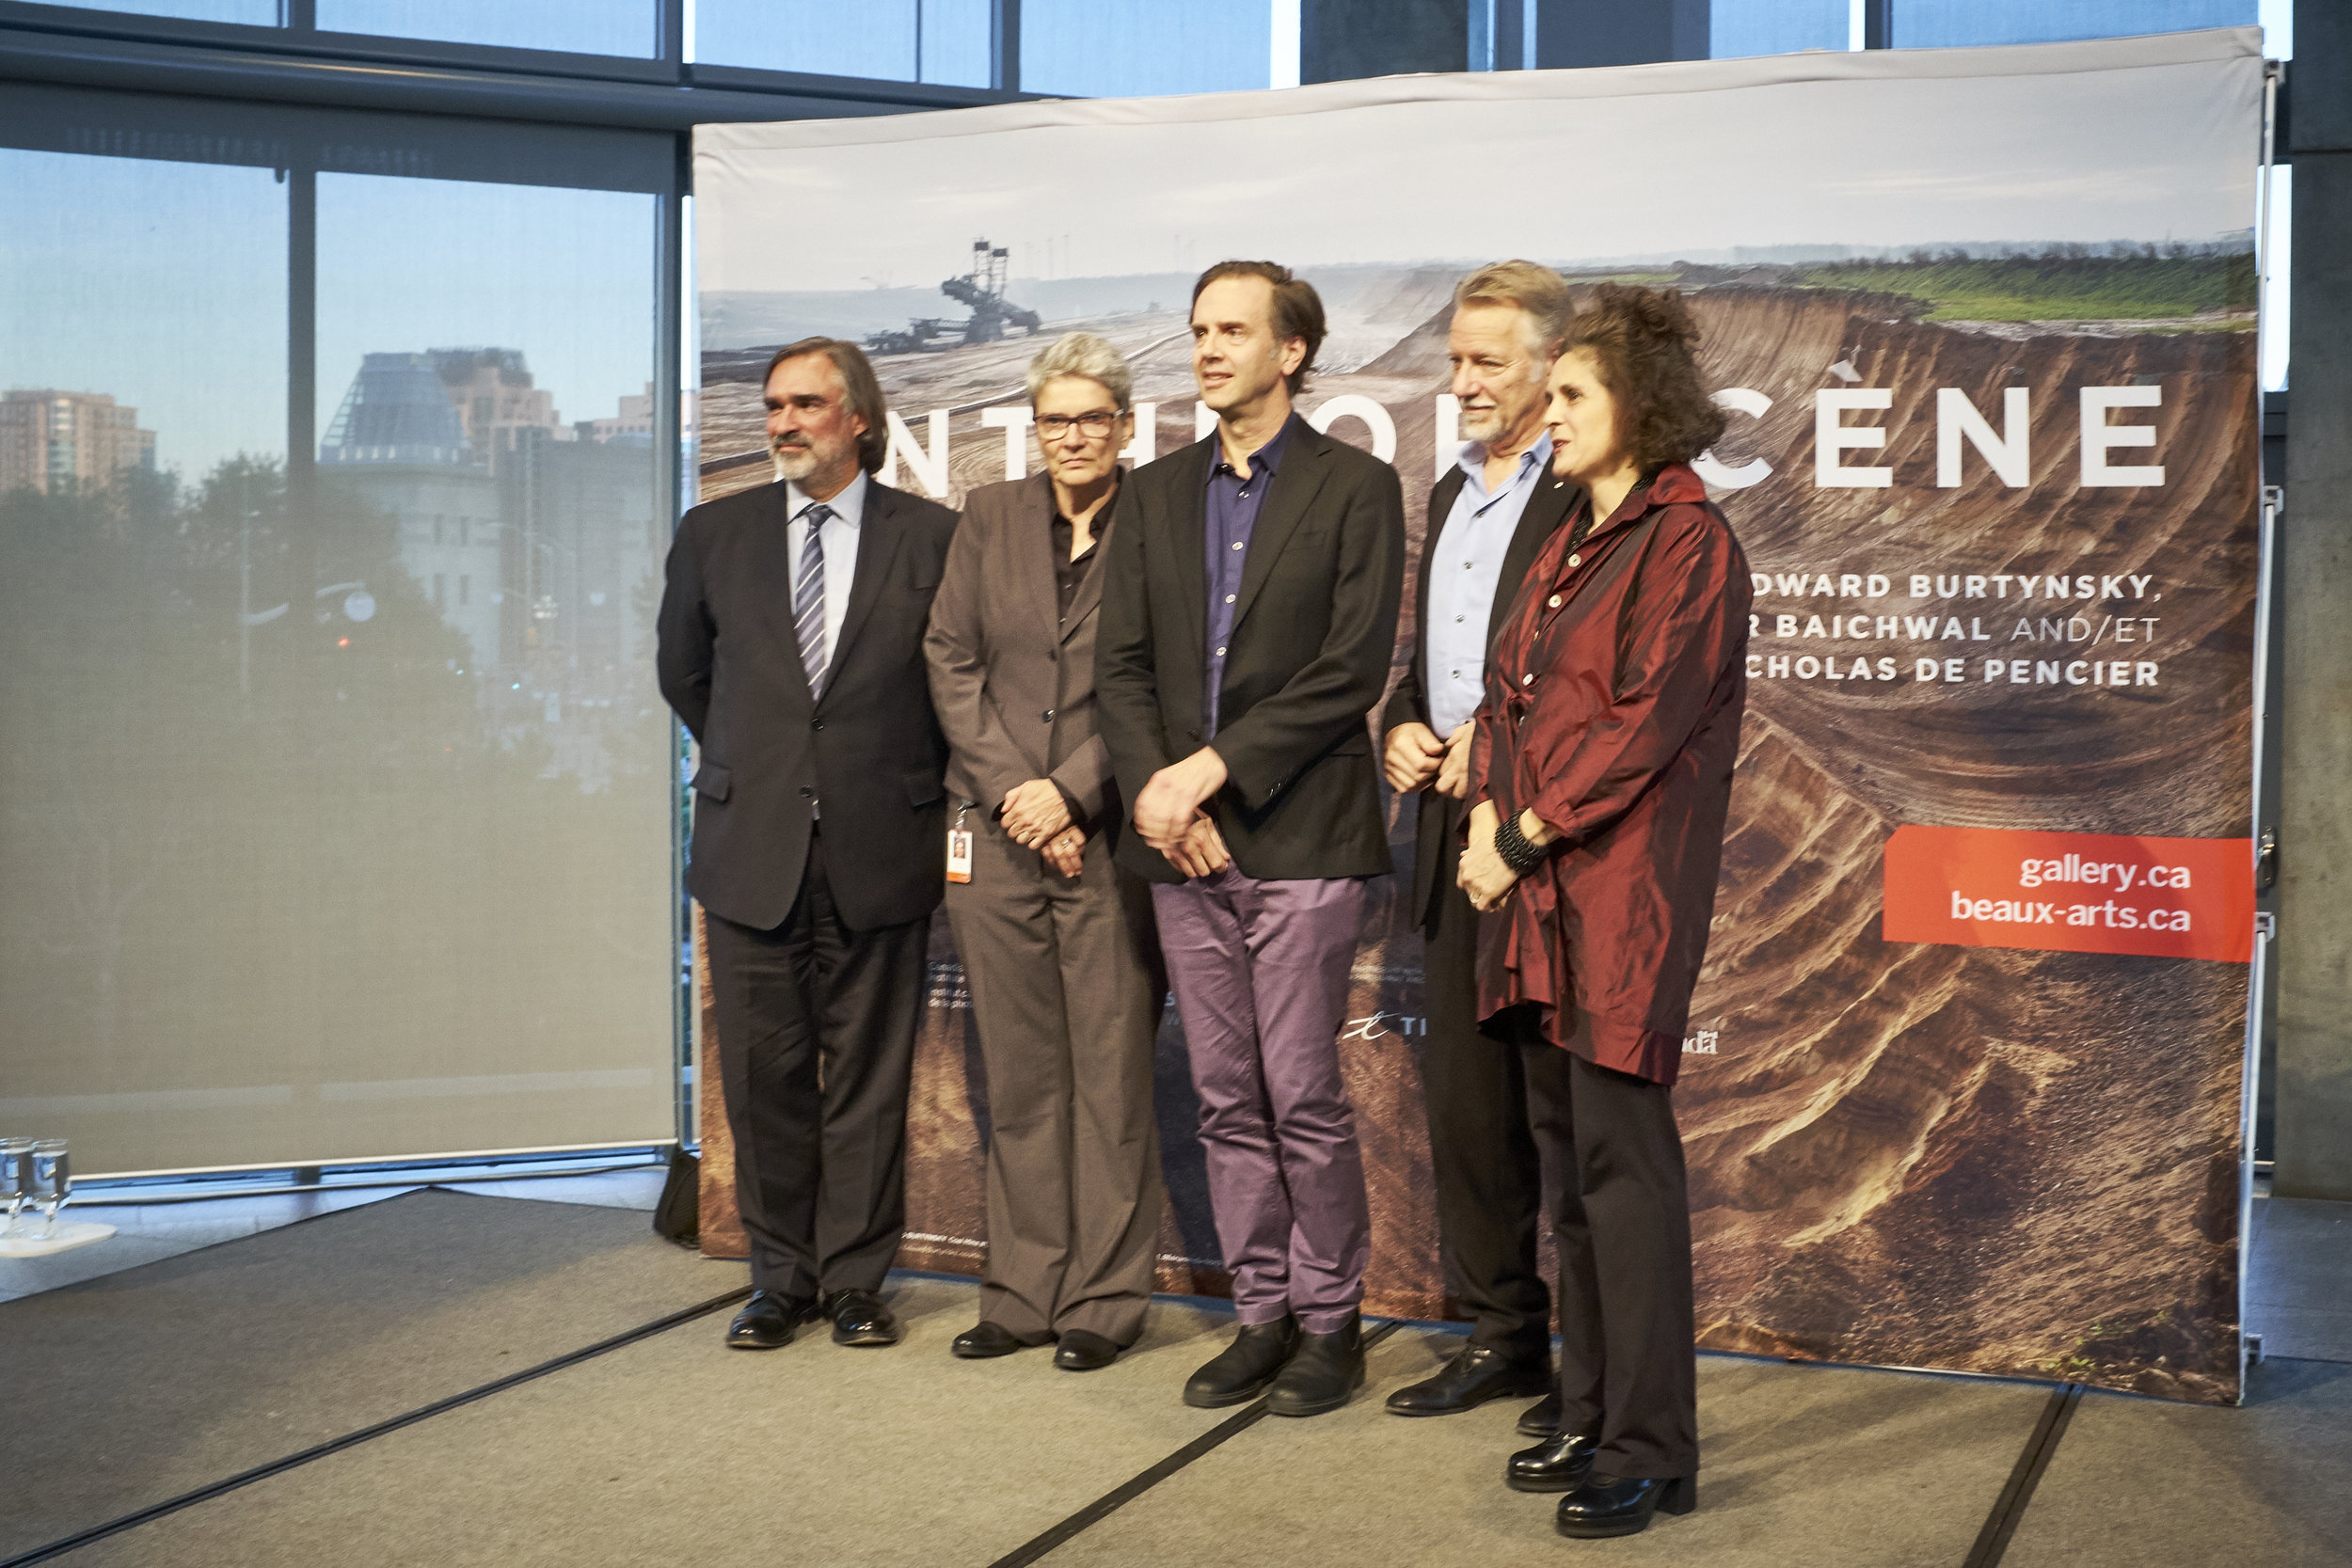 Anthropocene  opening at the National Gallery of Canada (NGC), Sept. 26, 2018. From left to right: Marc Mayer, Director of the NGC; Andrea Kunard, Associate Curator, Canadian Photography Institute, NGC; Nicholas de Pencier; Edward Burtynsky; and Jennifer Baichwal.